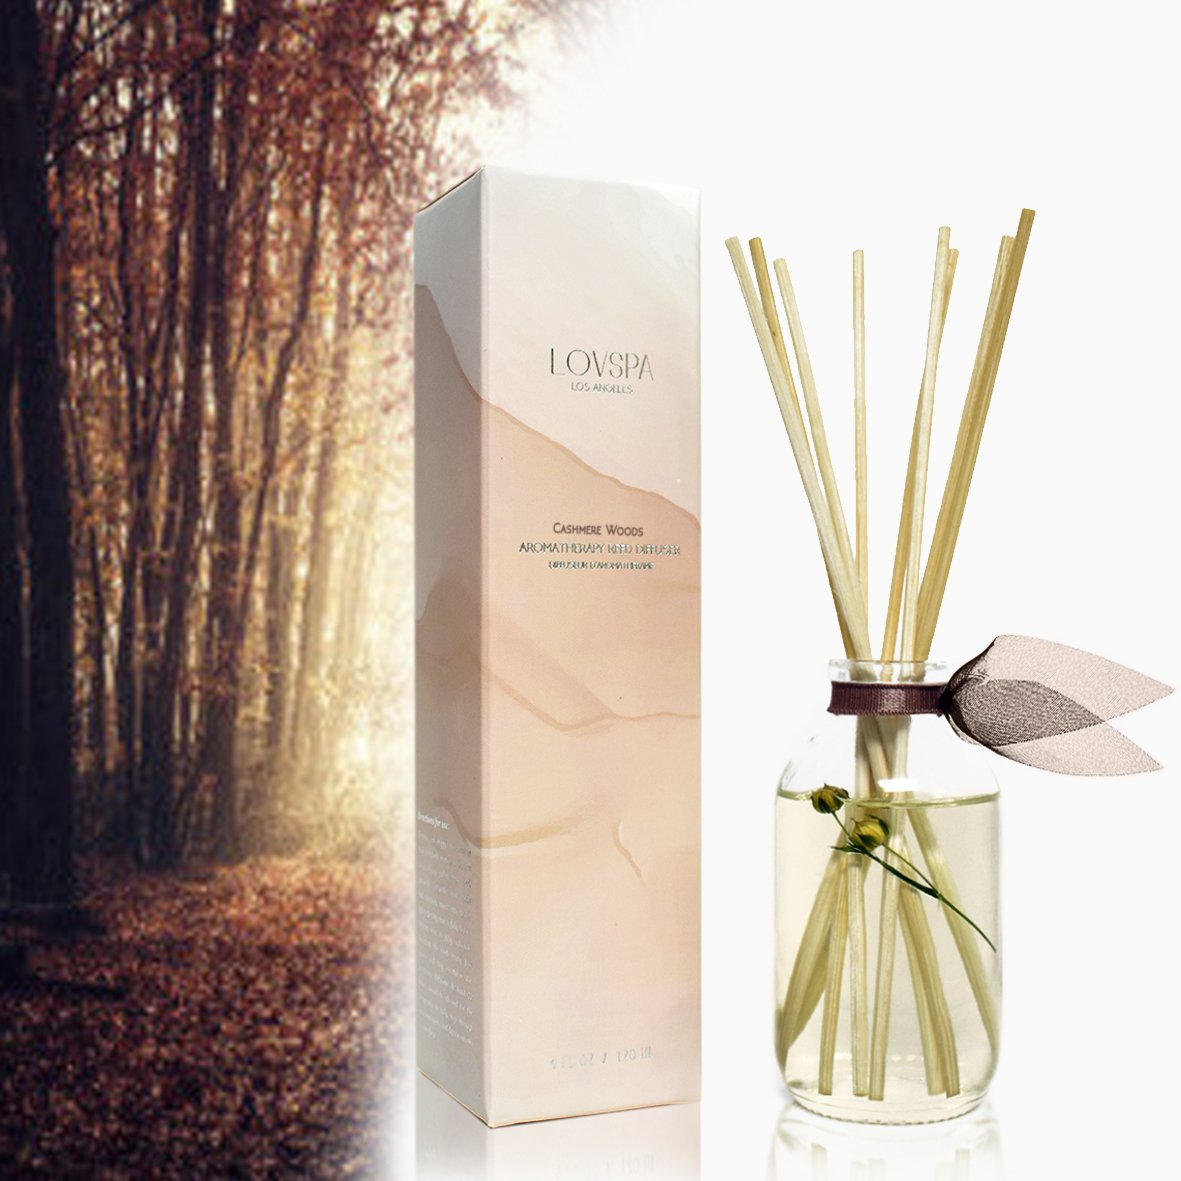 LOVSPA Cashmere Woods Reed Diffuser | Precious Woods & Sensual Amber are Blended with Soft Mimosa, Vanilla Musk, Apricot Nectar and Juicy Berry